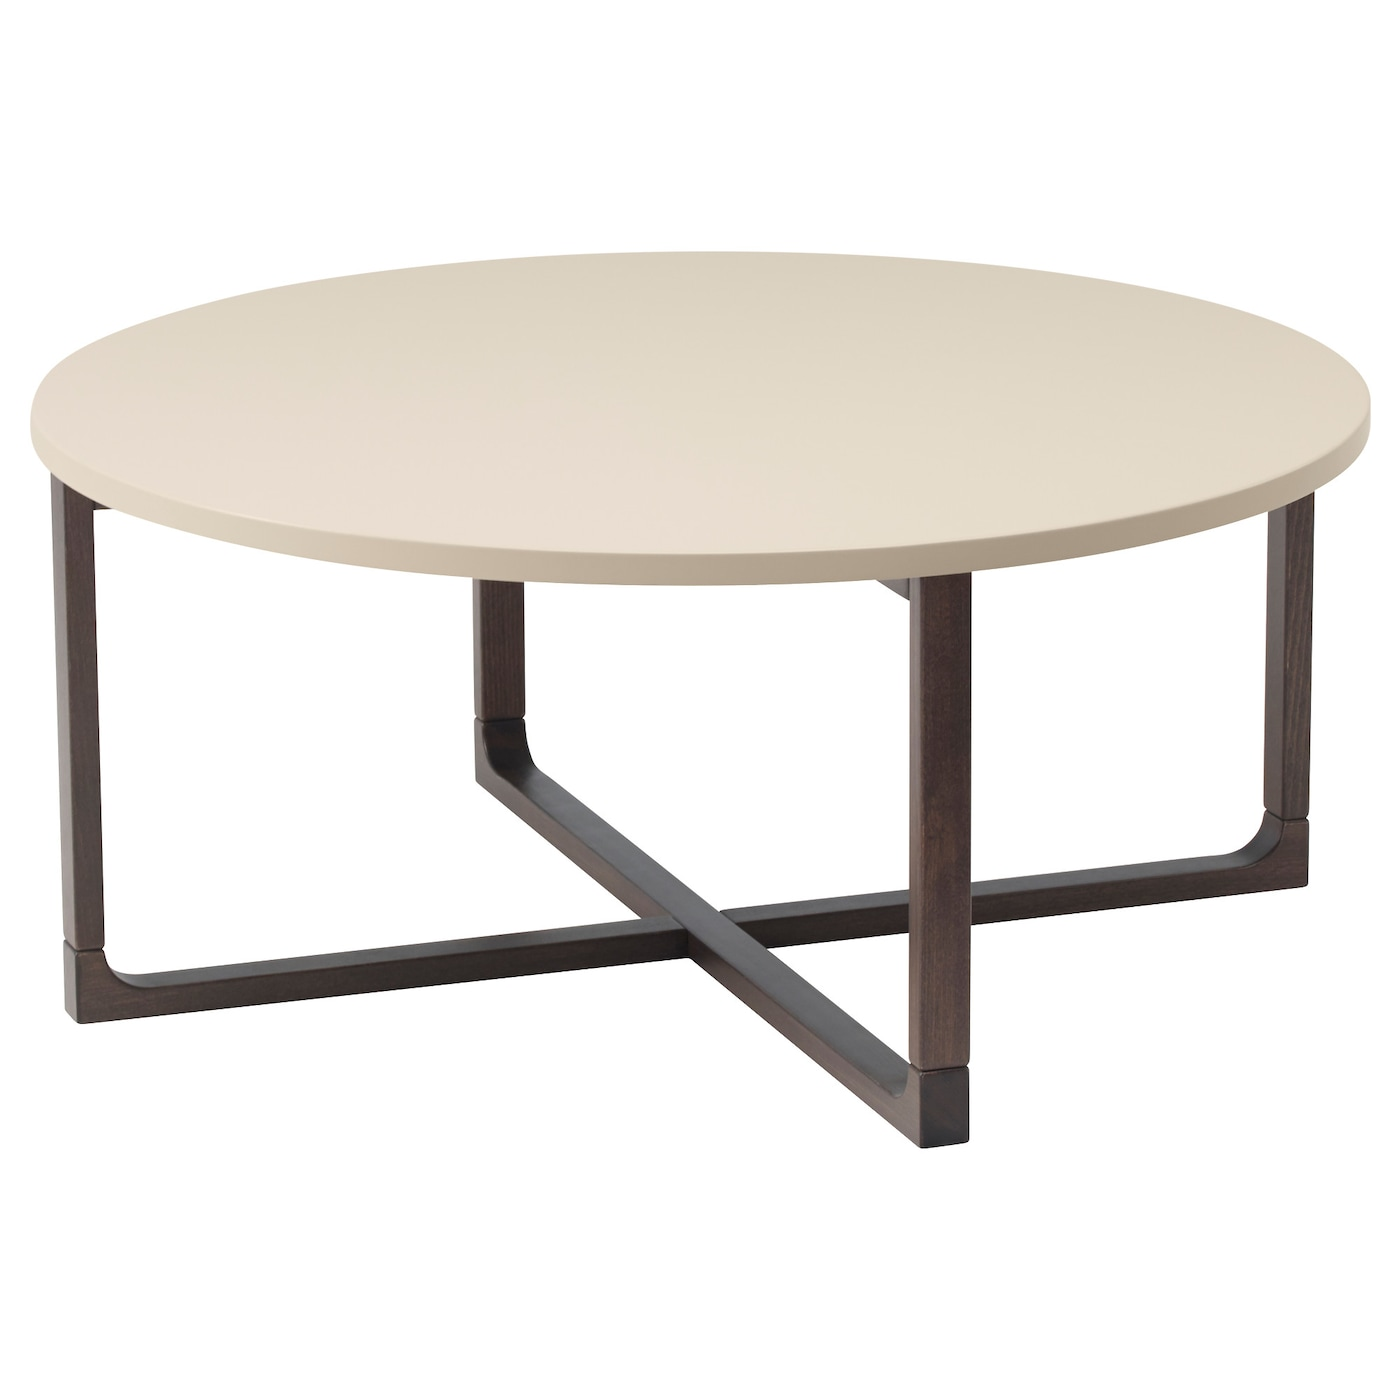 Rissna coffee table beige 90 cm ikea for Ikea end tables salon